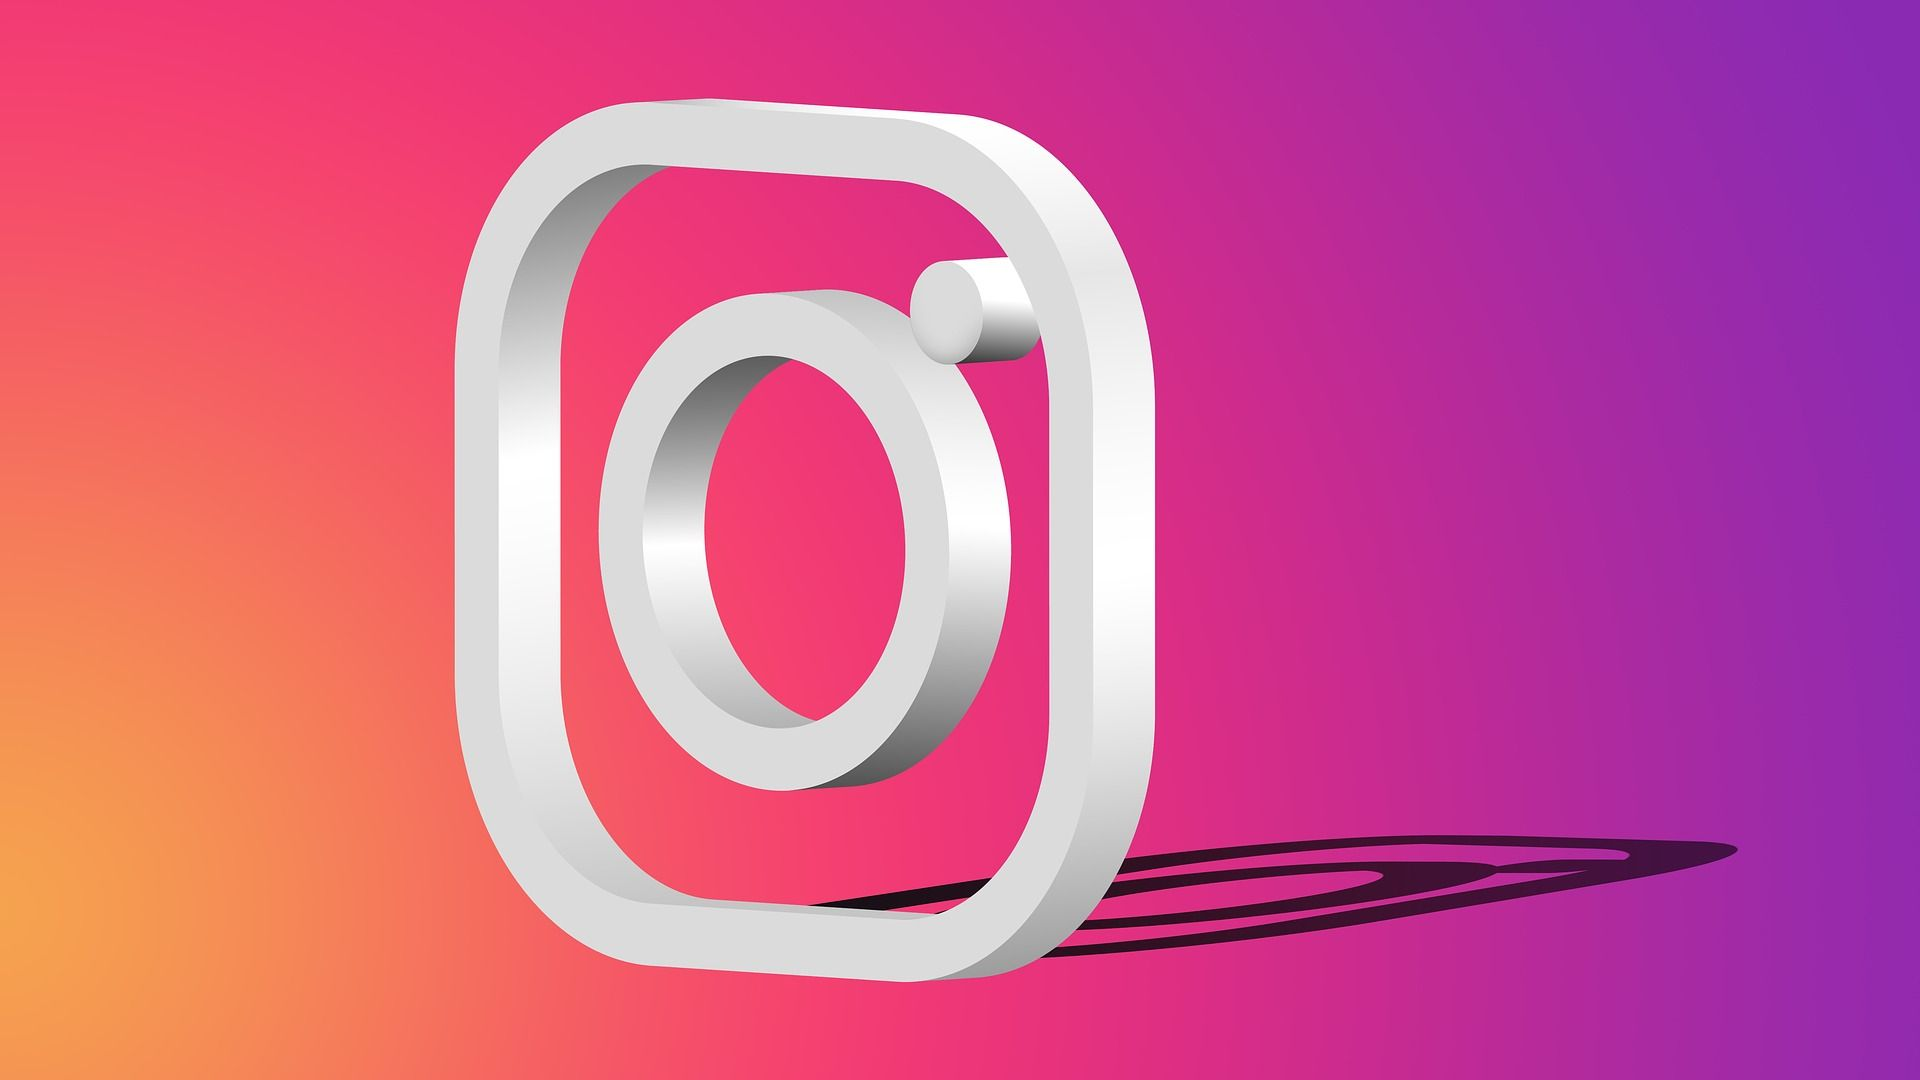 The best guide to use Instagram for marketing